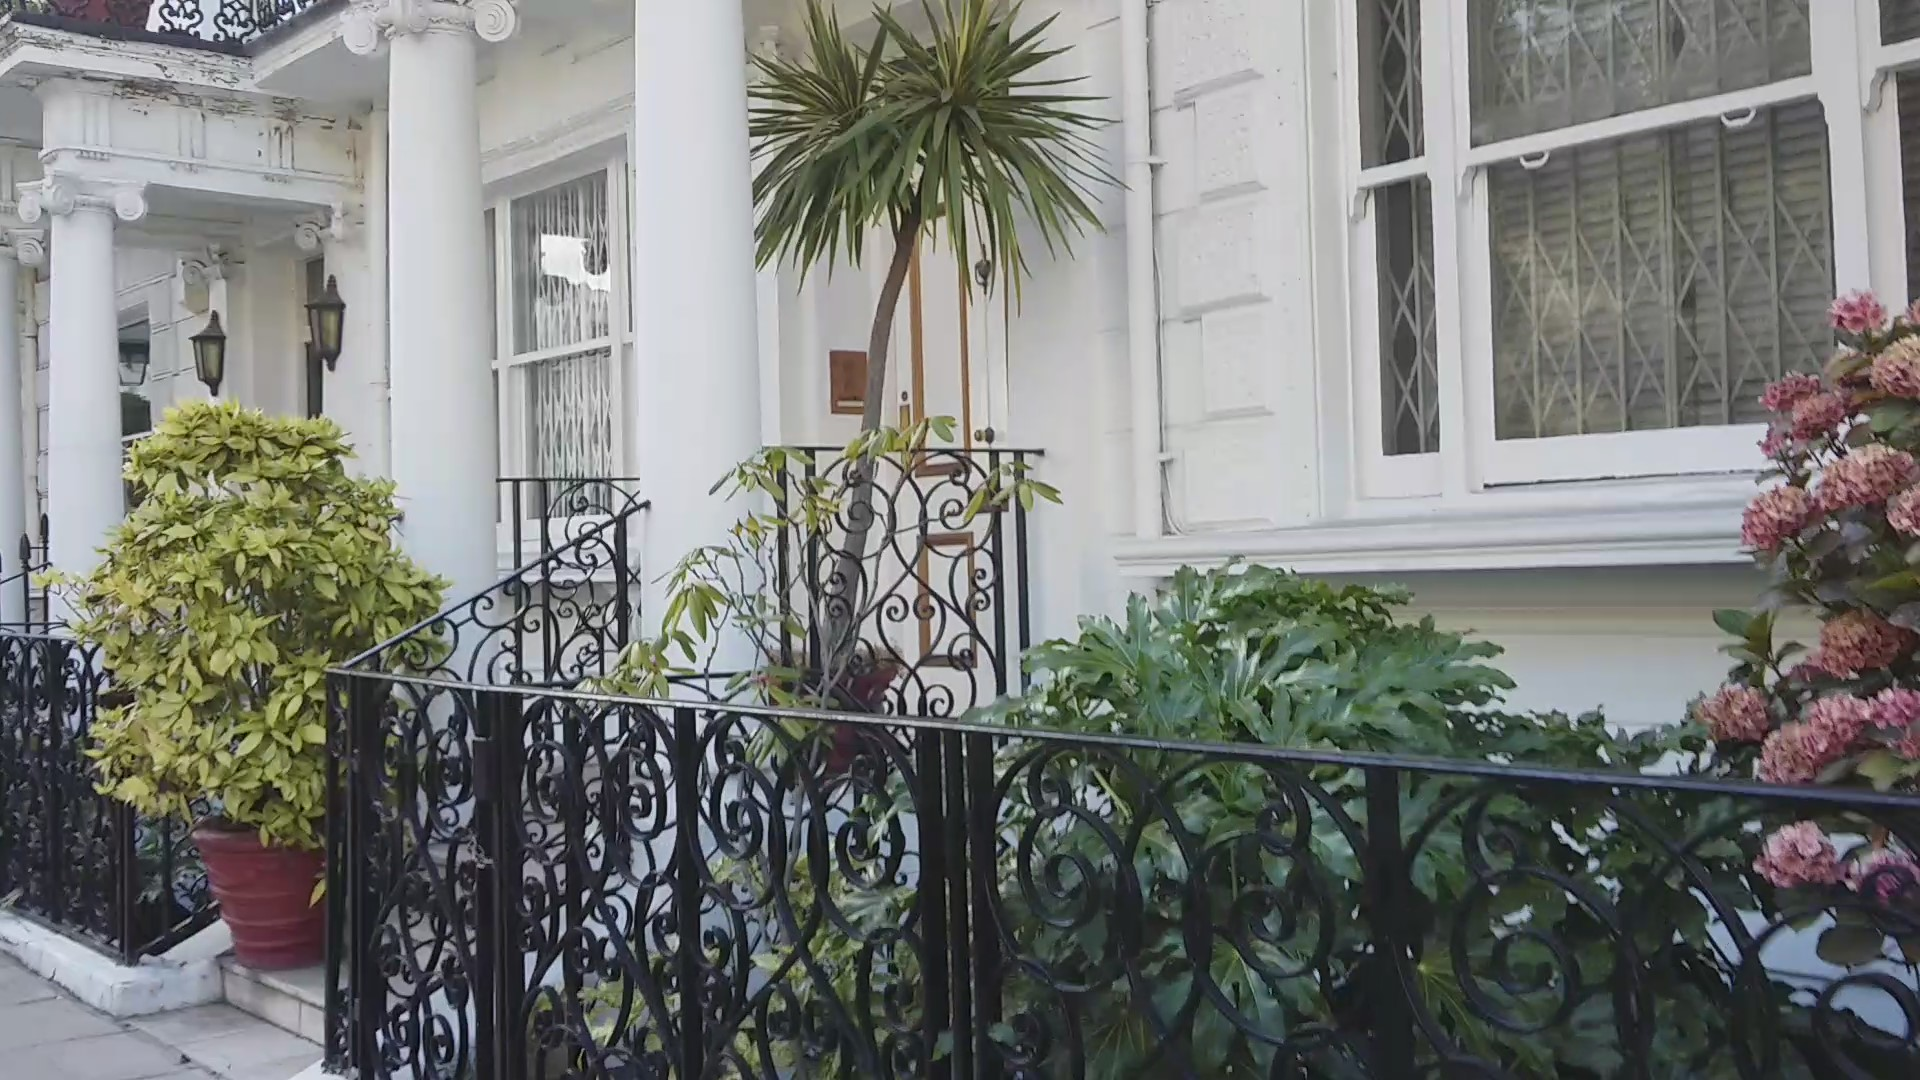 The house in which Jimi Hendrix died